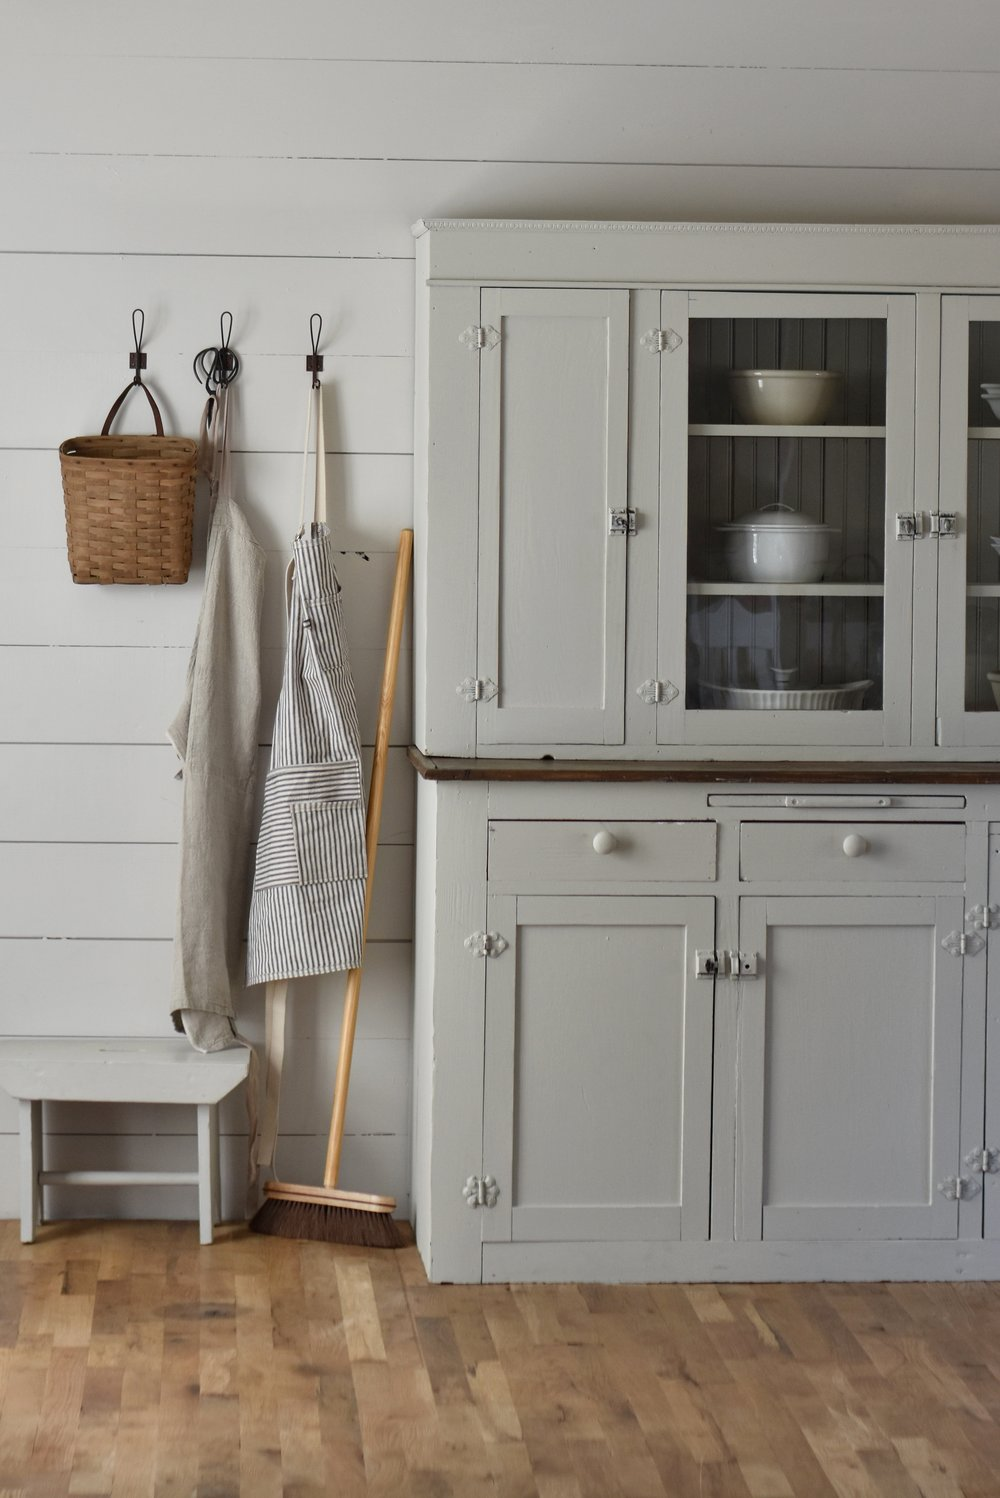 Magnolia Paint color called Gatherings. A simple farmhouse style hutch makeover www.rockyhedgefarm.com